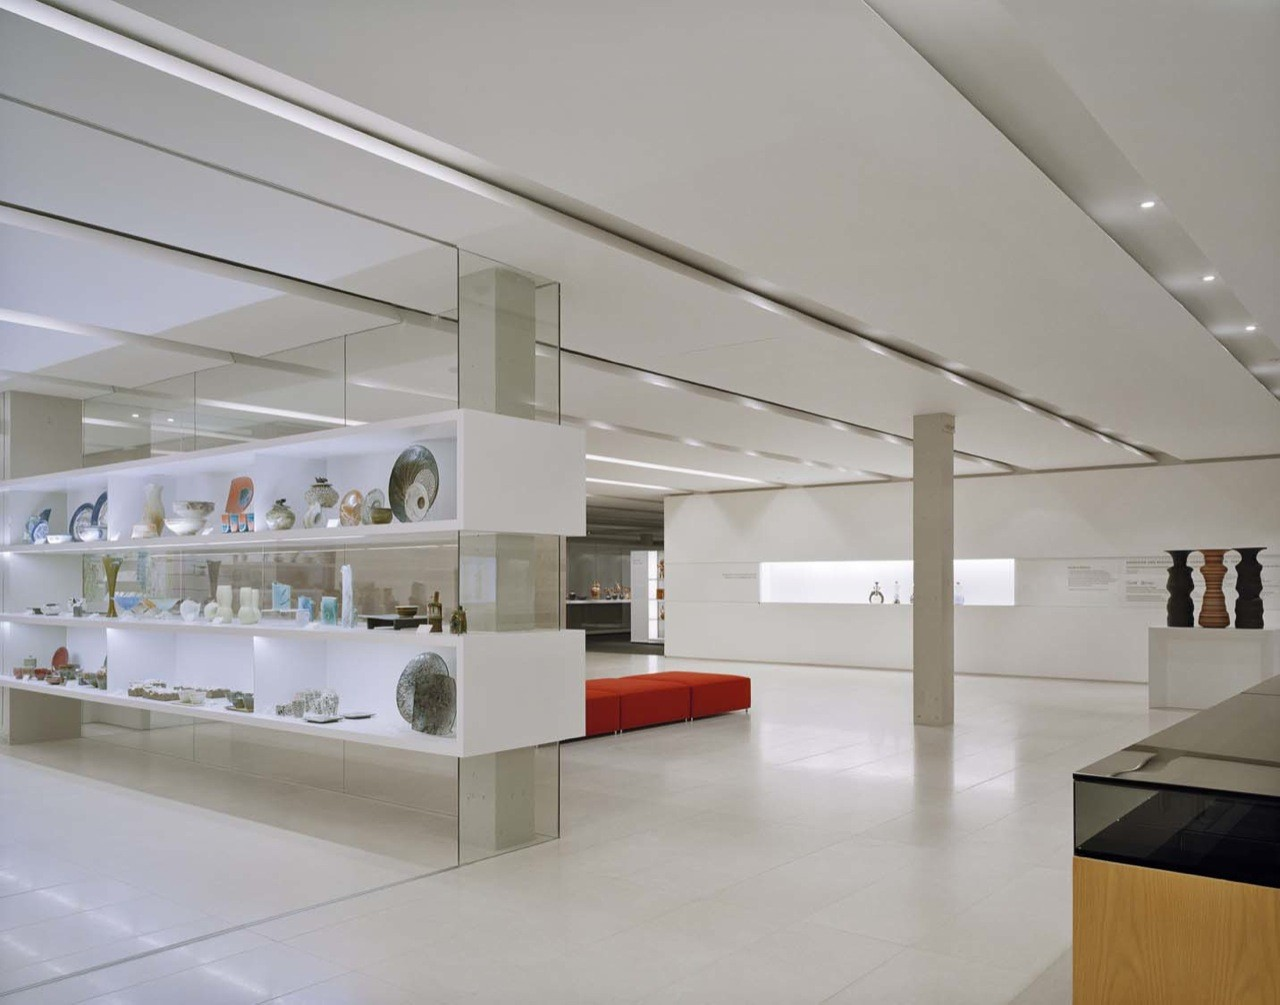 Gallery of The Gardiner Museum / KPMB Architects - 5